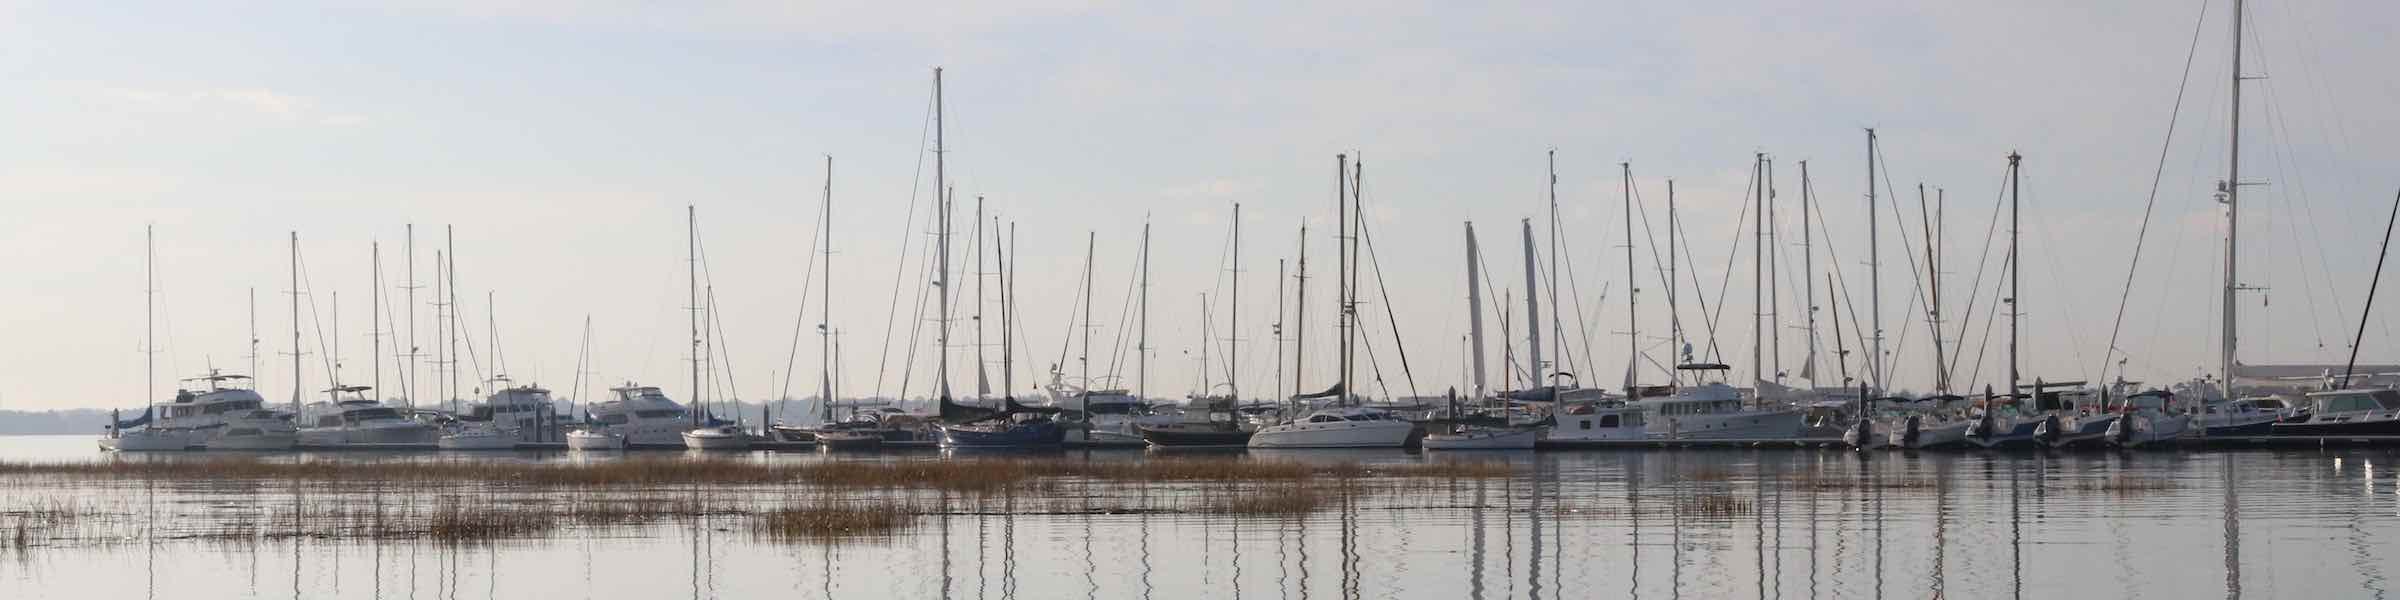 Peaceful scene of boats in a Charleston marina.